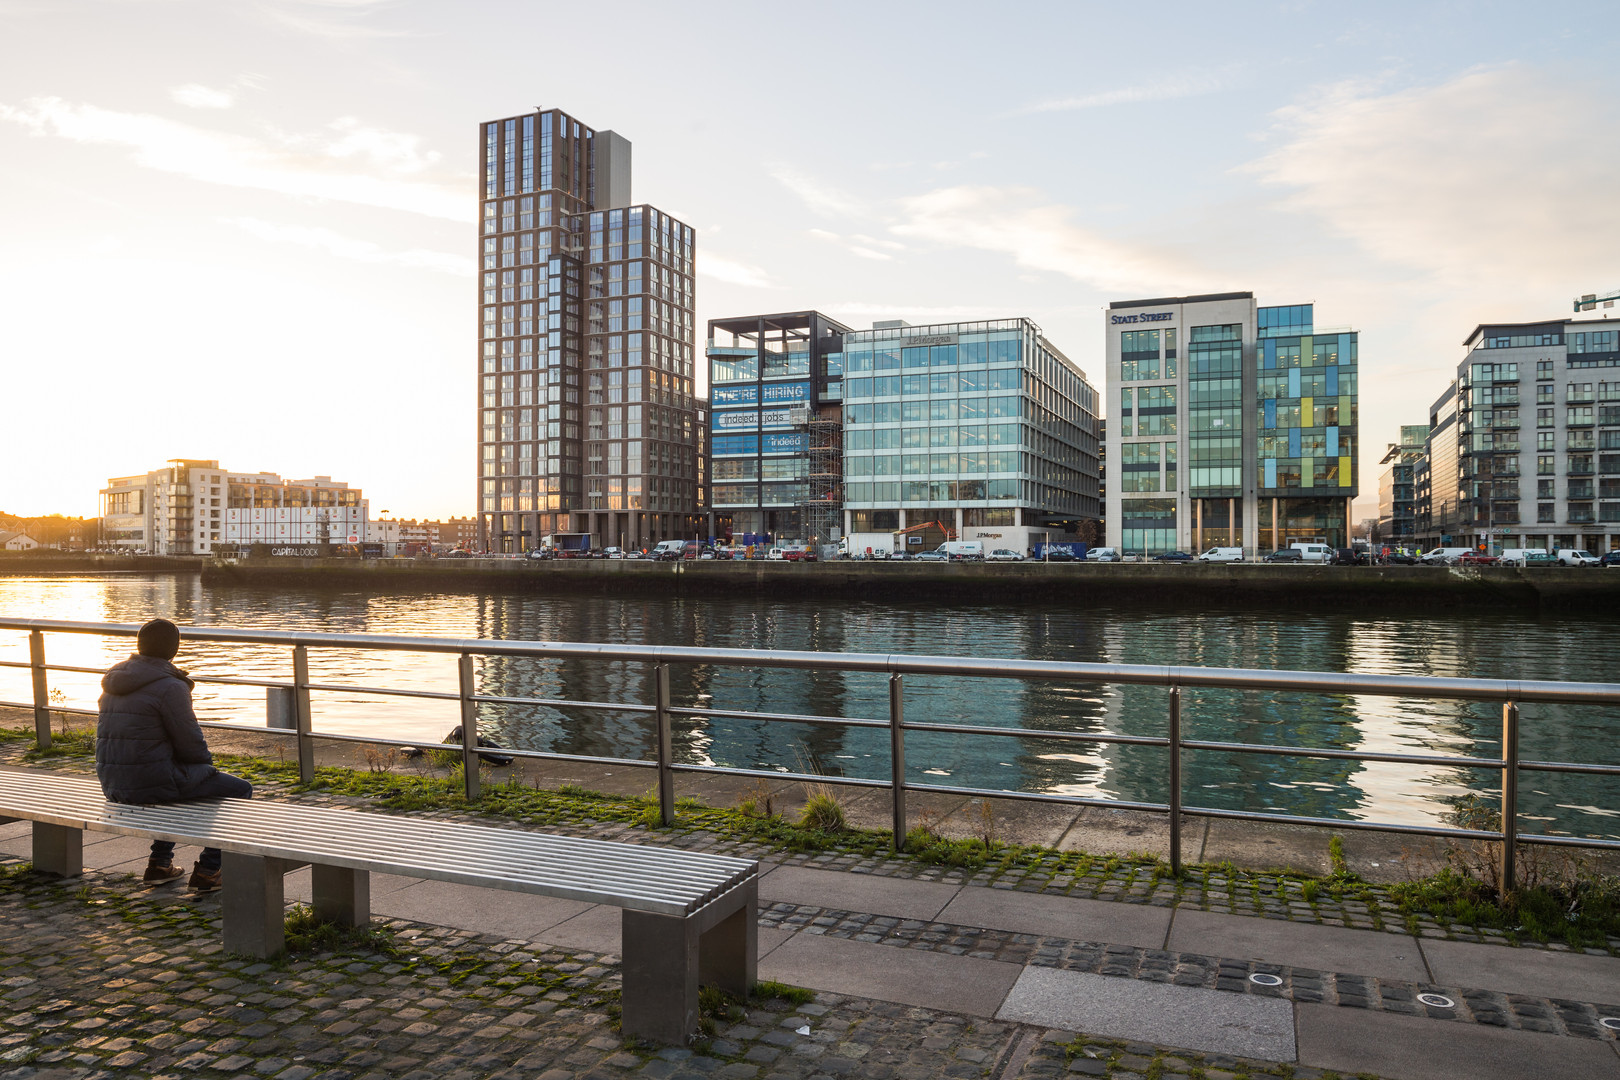 View of Capital Dock from across the Liffey with person sitting on bench in Dublin